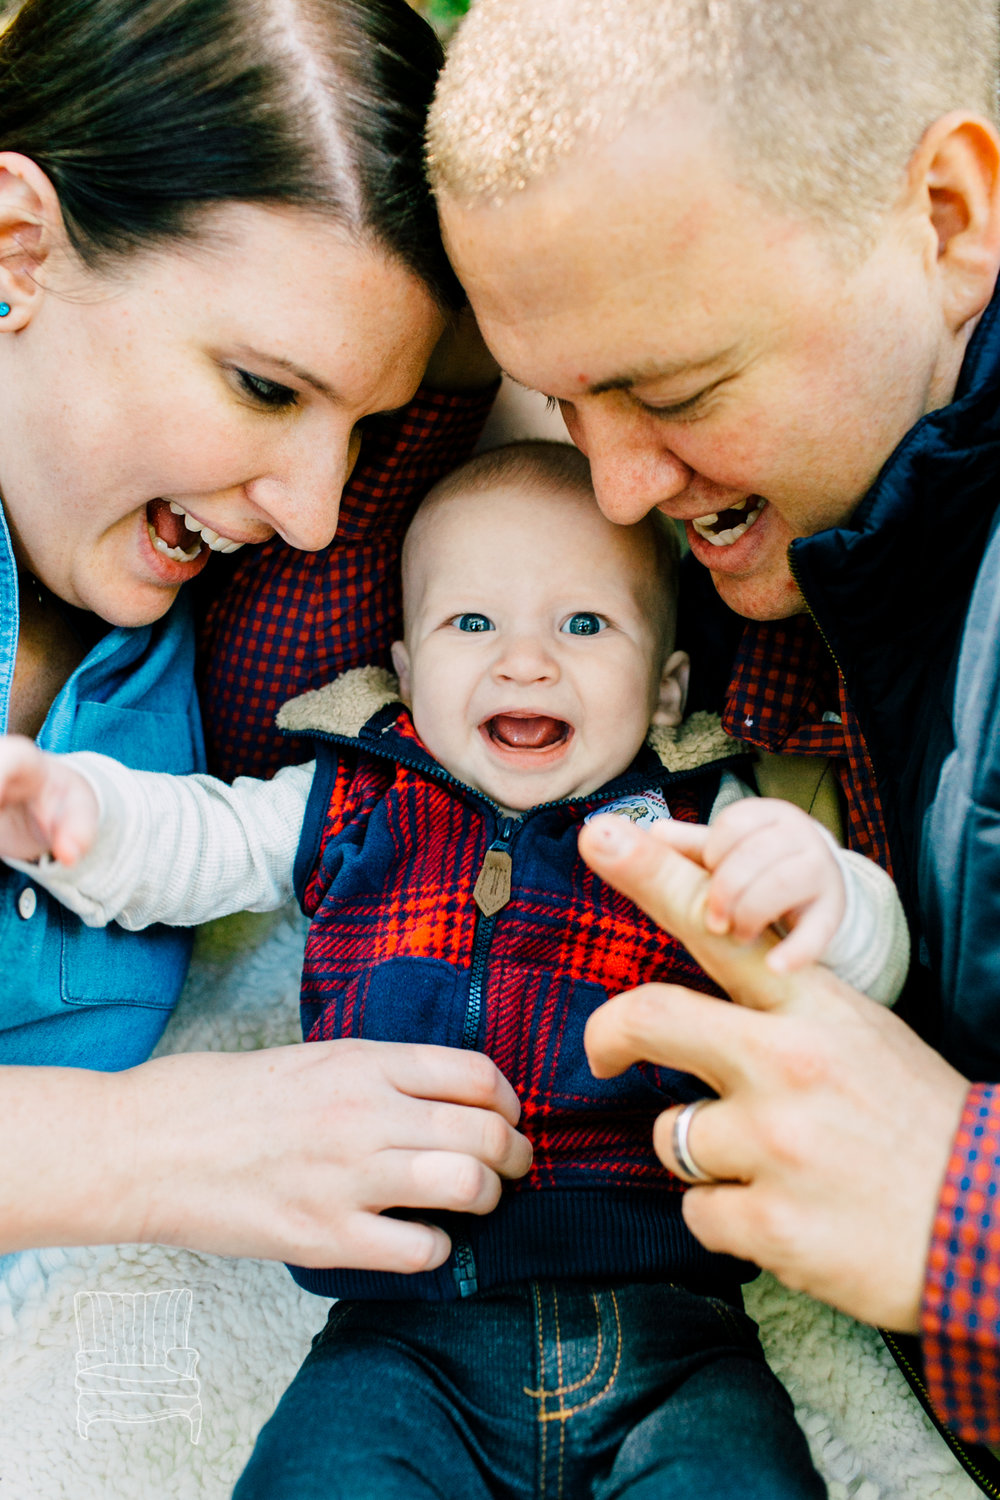 seattle-family-photographer-katheryn-moran-spencer-5.jpg